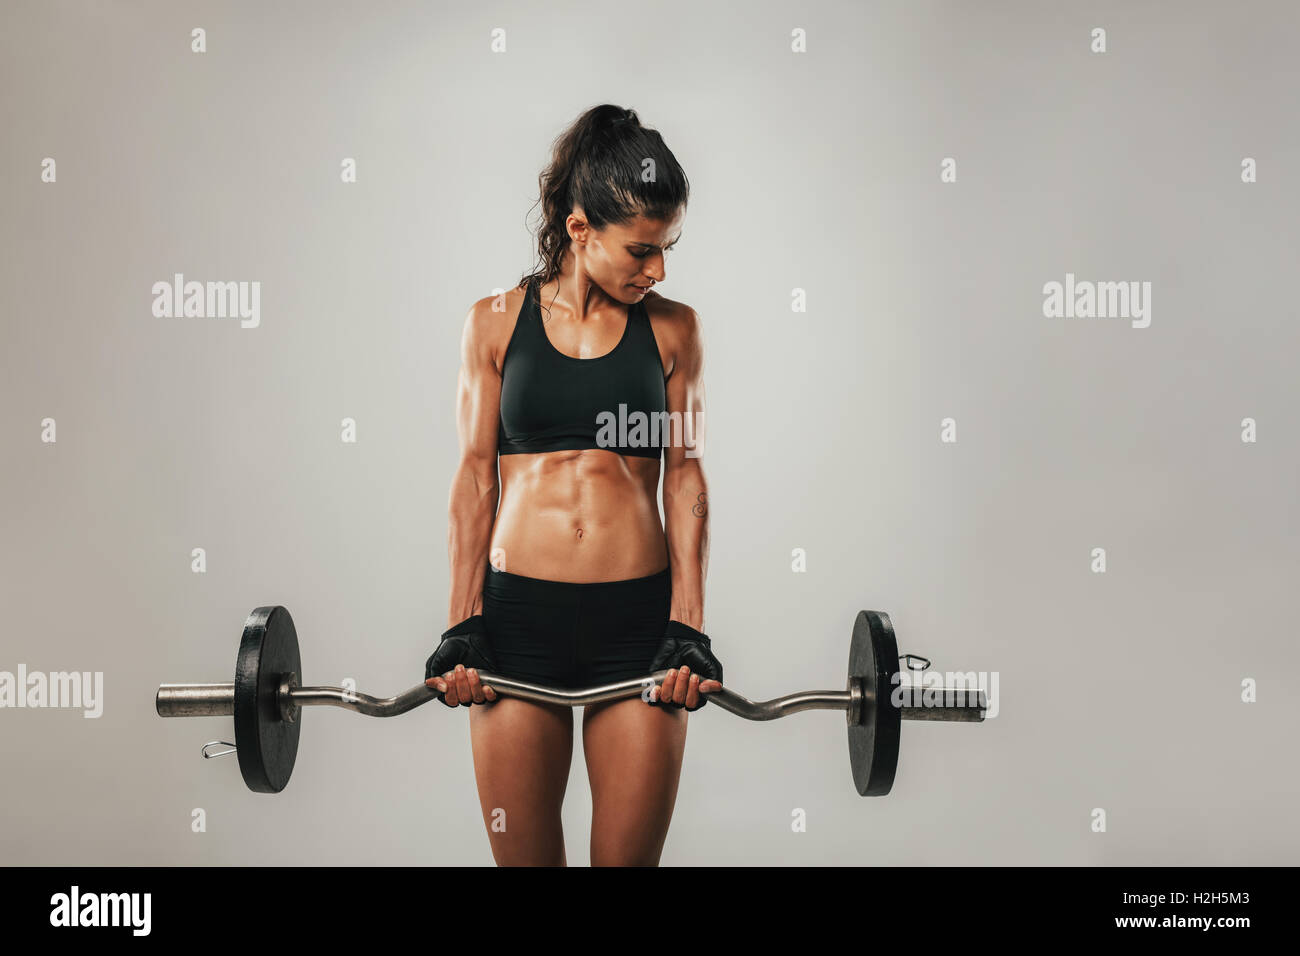 Female athlete strengthening biceps with curved barbell over gray background with copy space - Stock Image